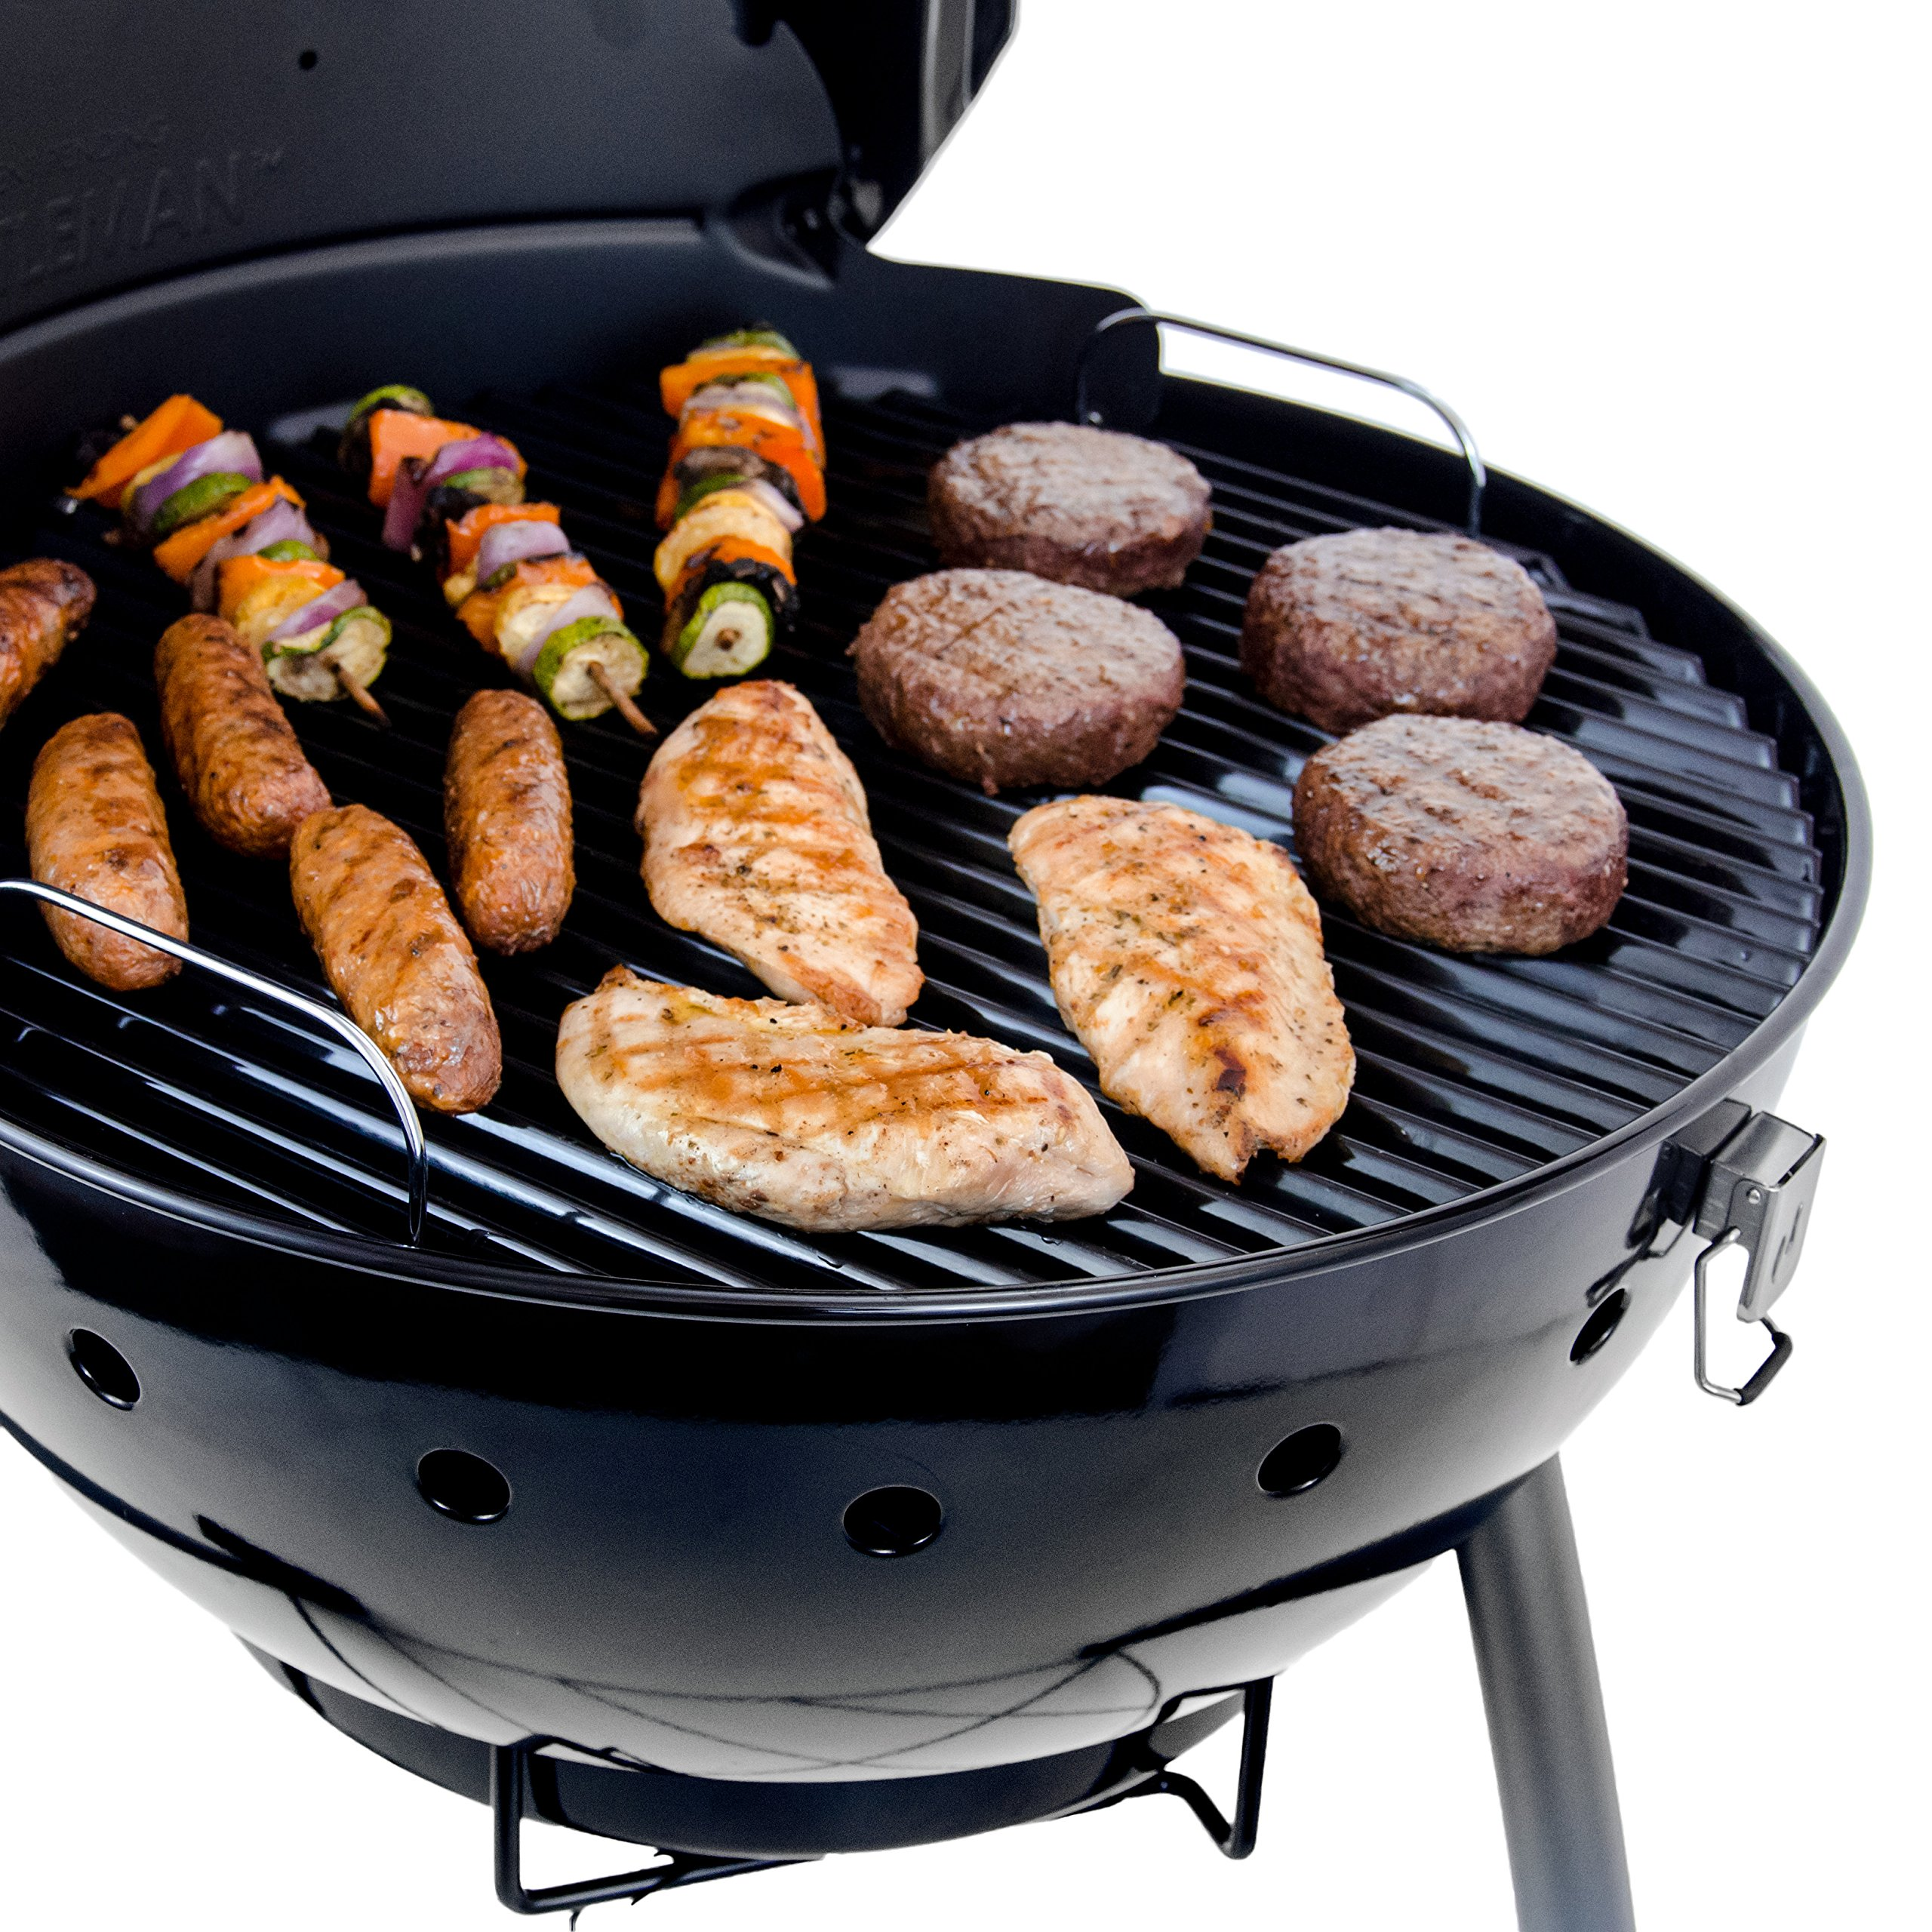 Char-Broil TRU-Infrared Kettleman Charcoal Grill, 22.5 Inch by Char-Broil (Image #4)